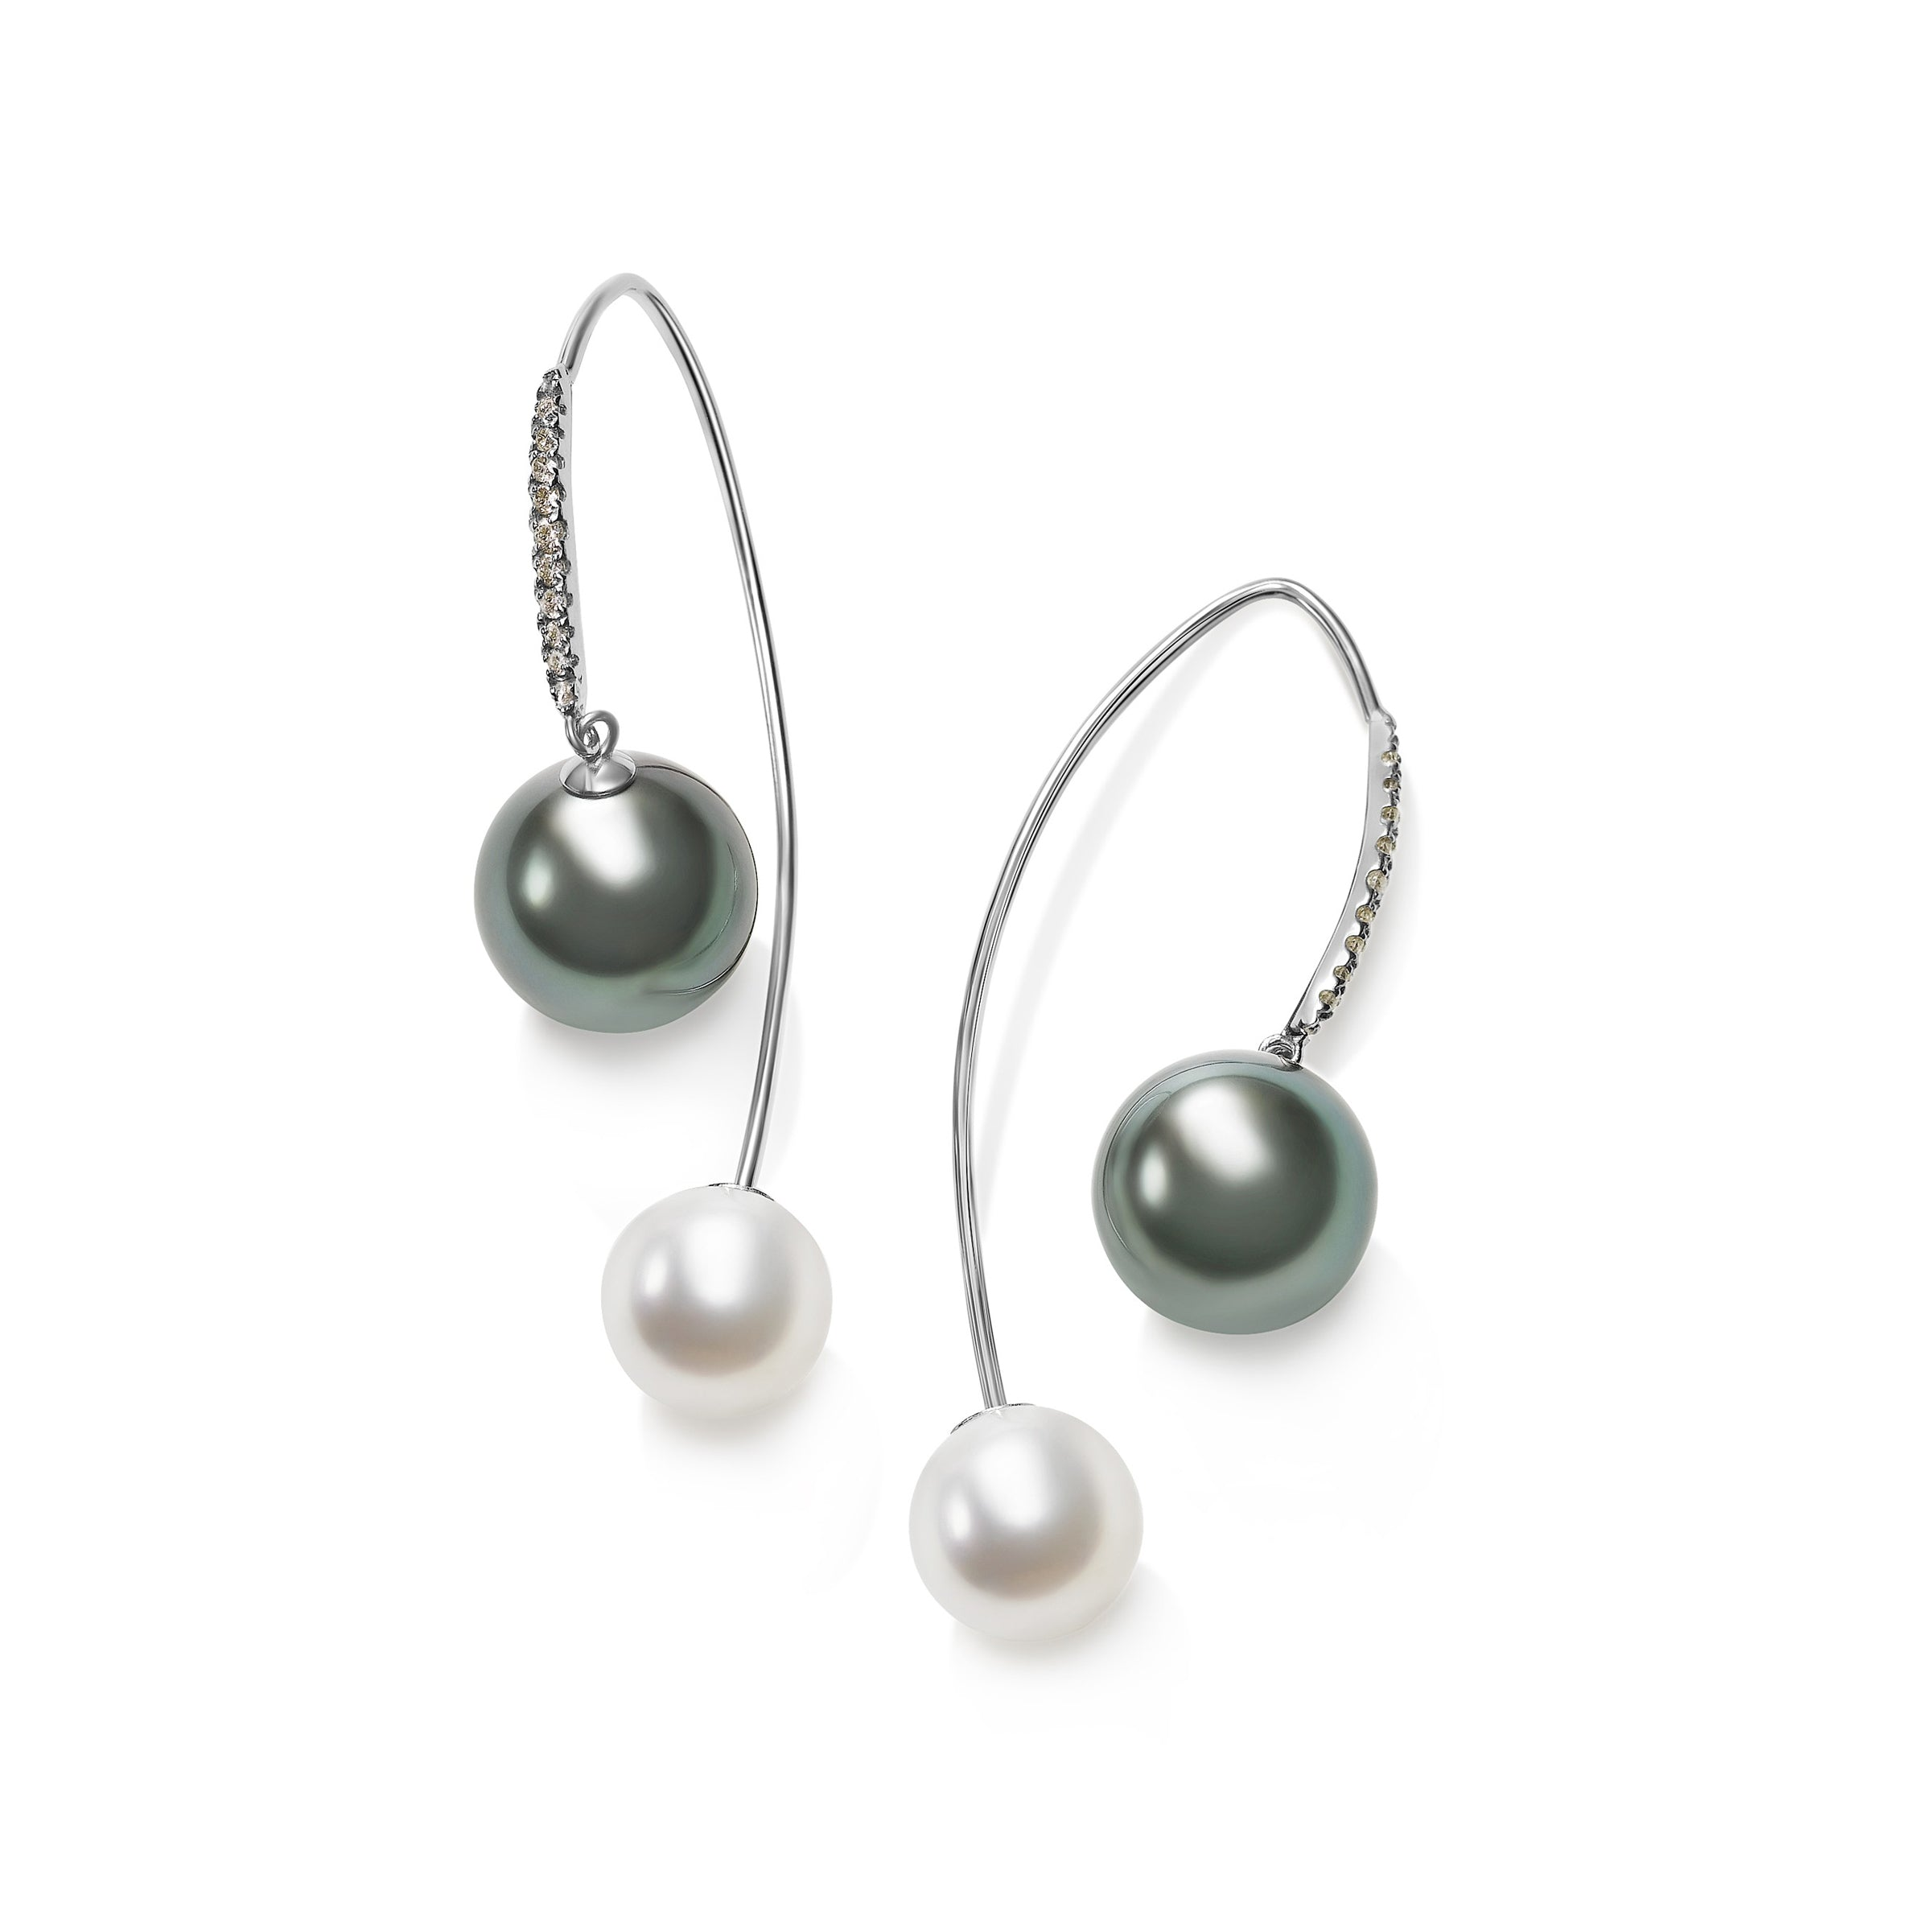 Tahitian Grey and White Cultured Pearl Earrings, 14K White Gold